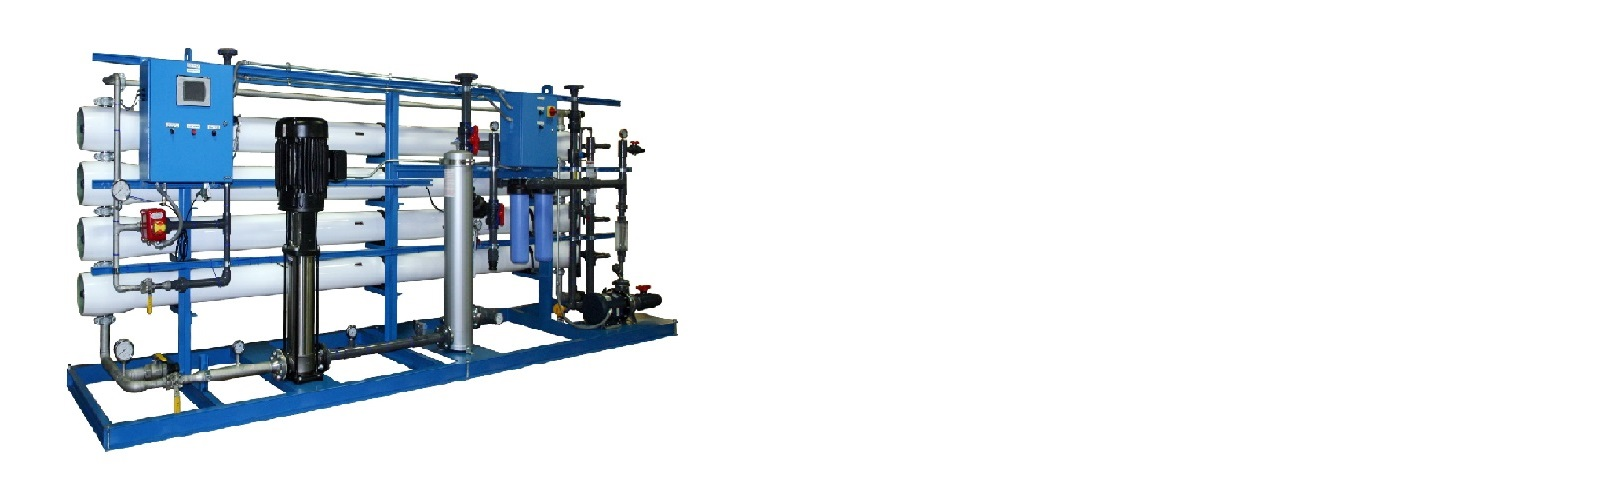 industrial water treatment reverse osmosis system